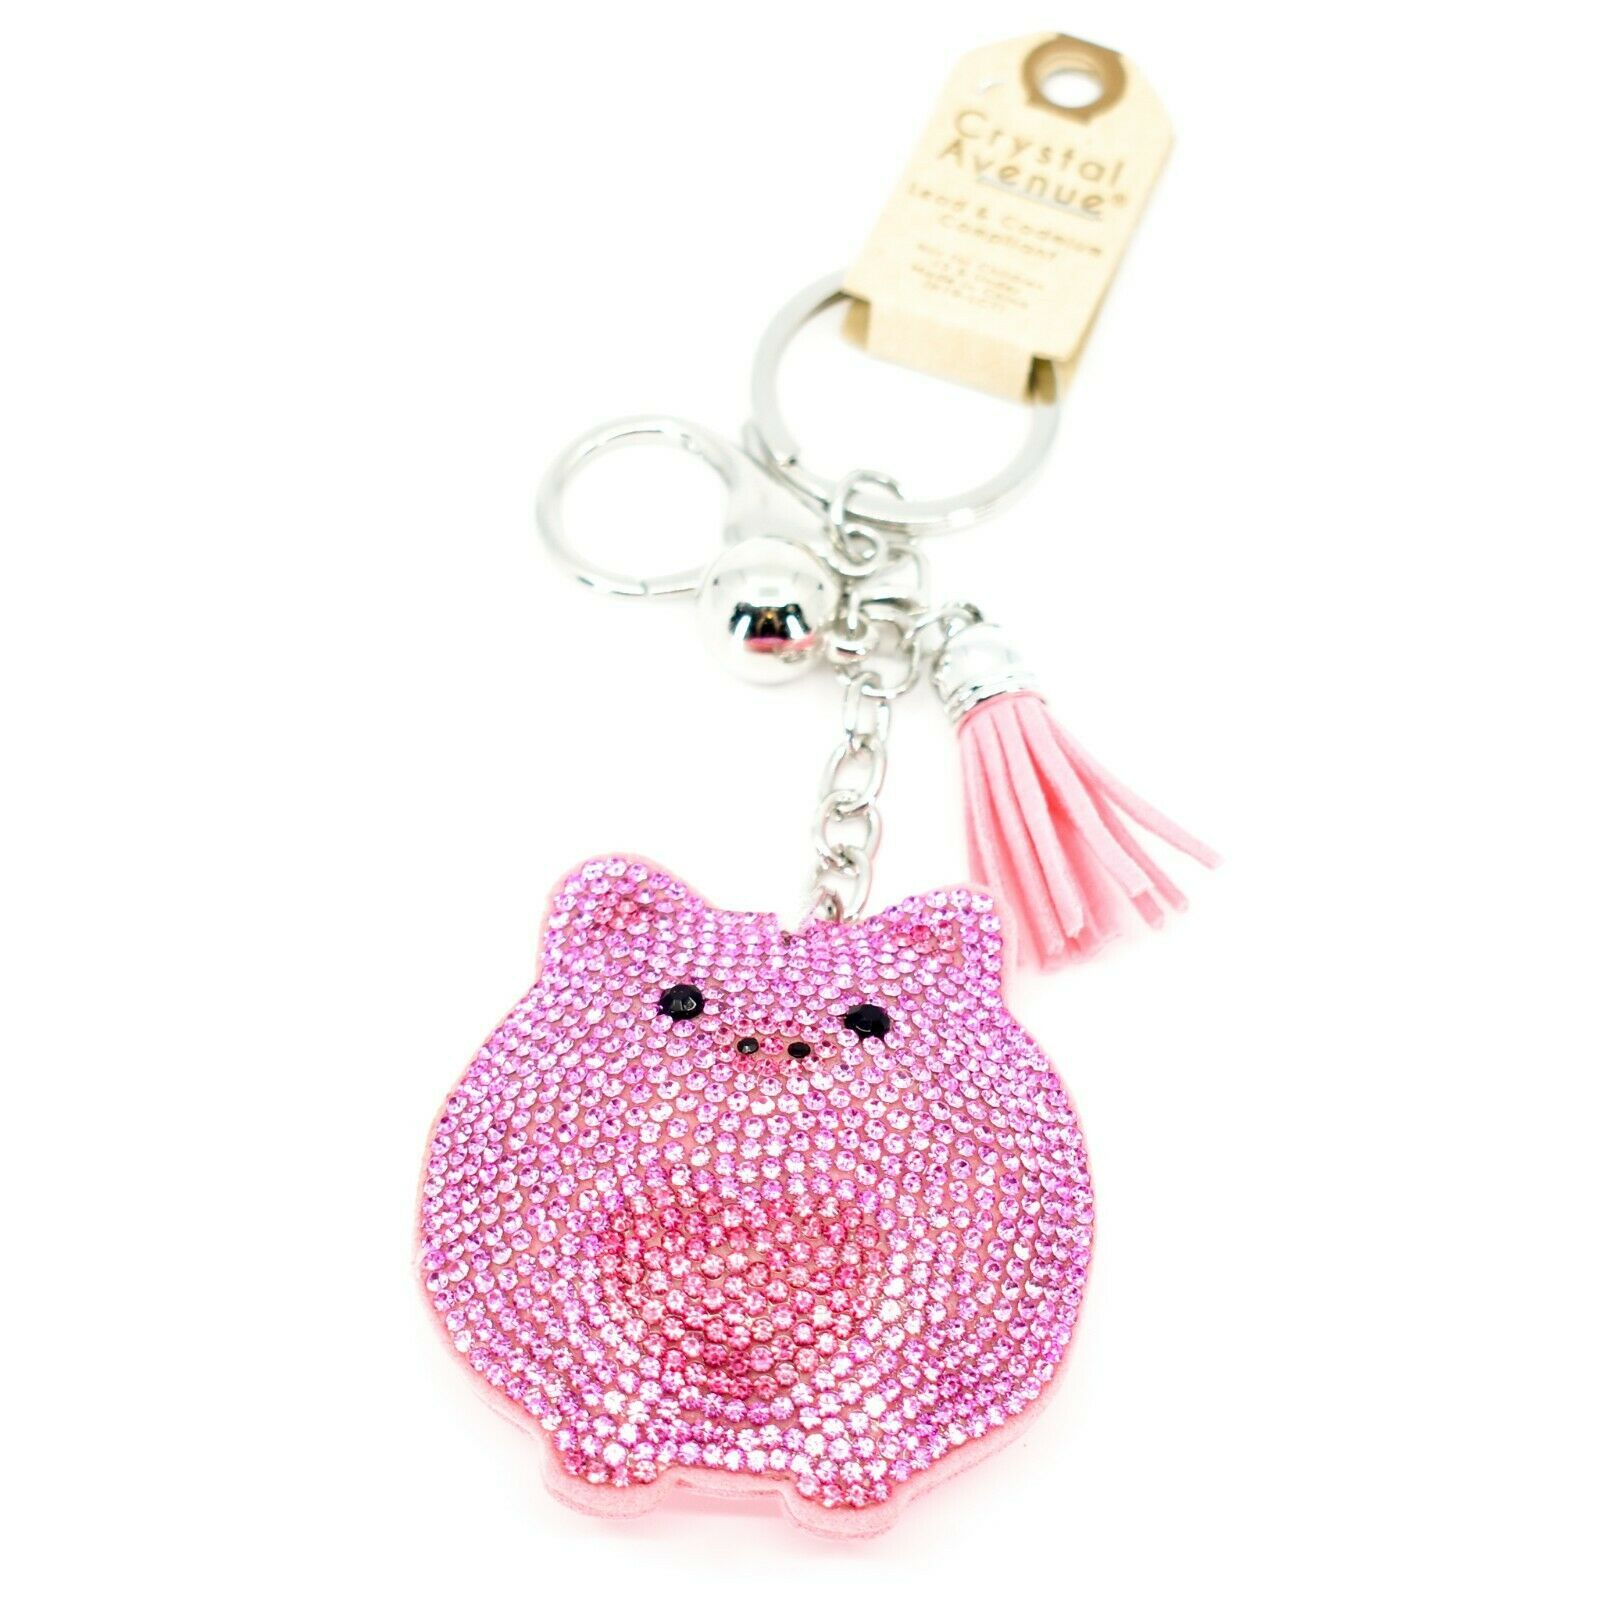 Pave Crystal Accent 3D Stuffed Pillow Pink Heart Pig Keychain Key Chain